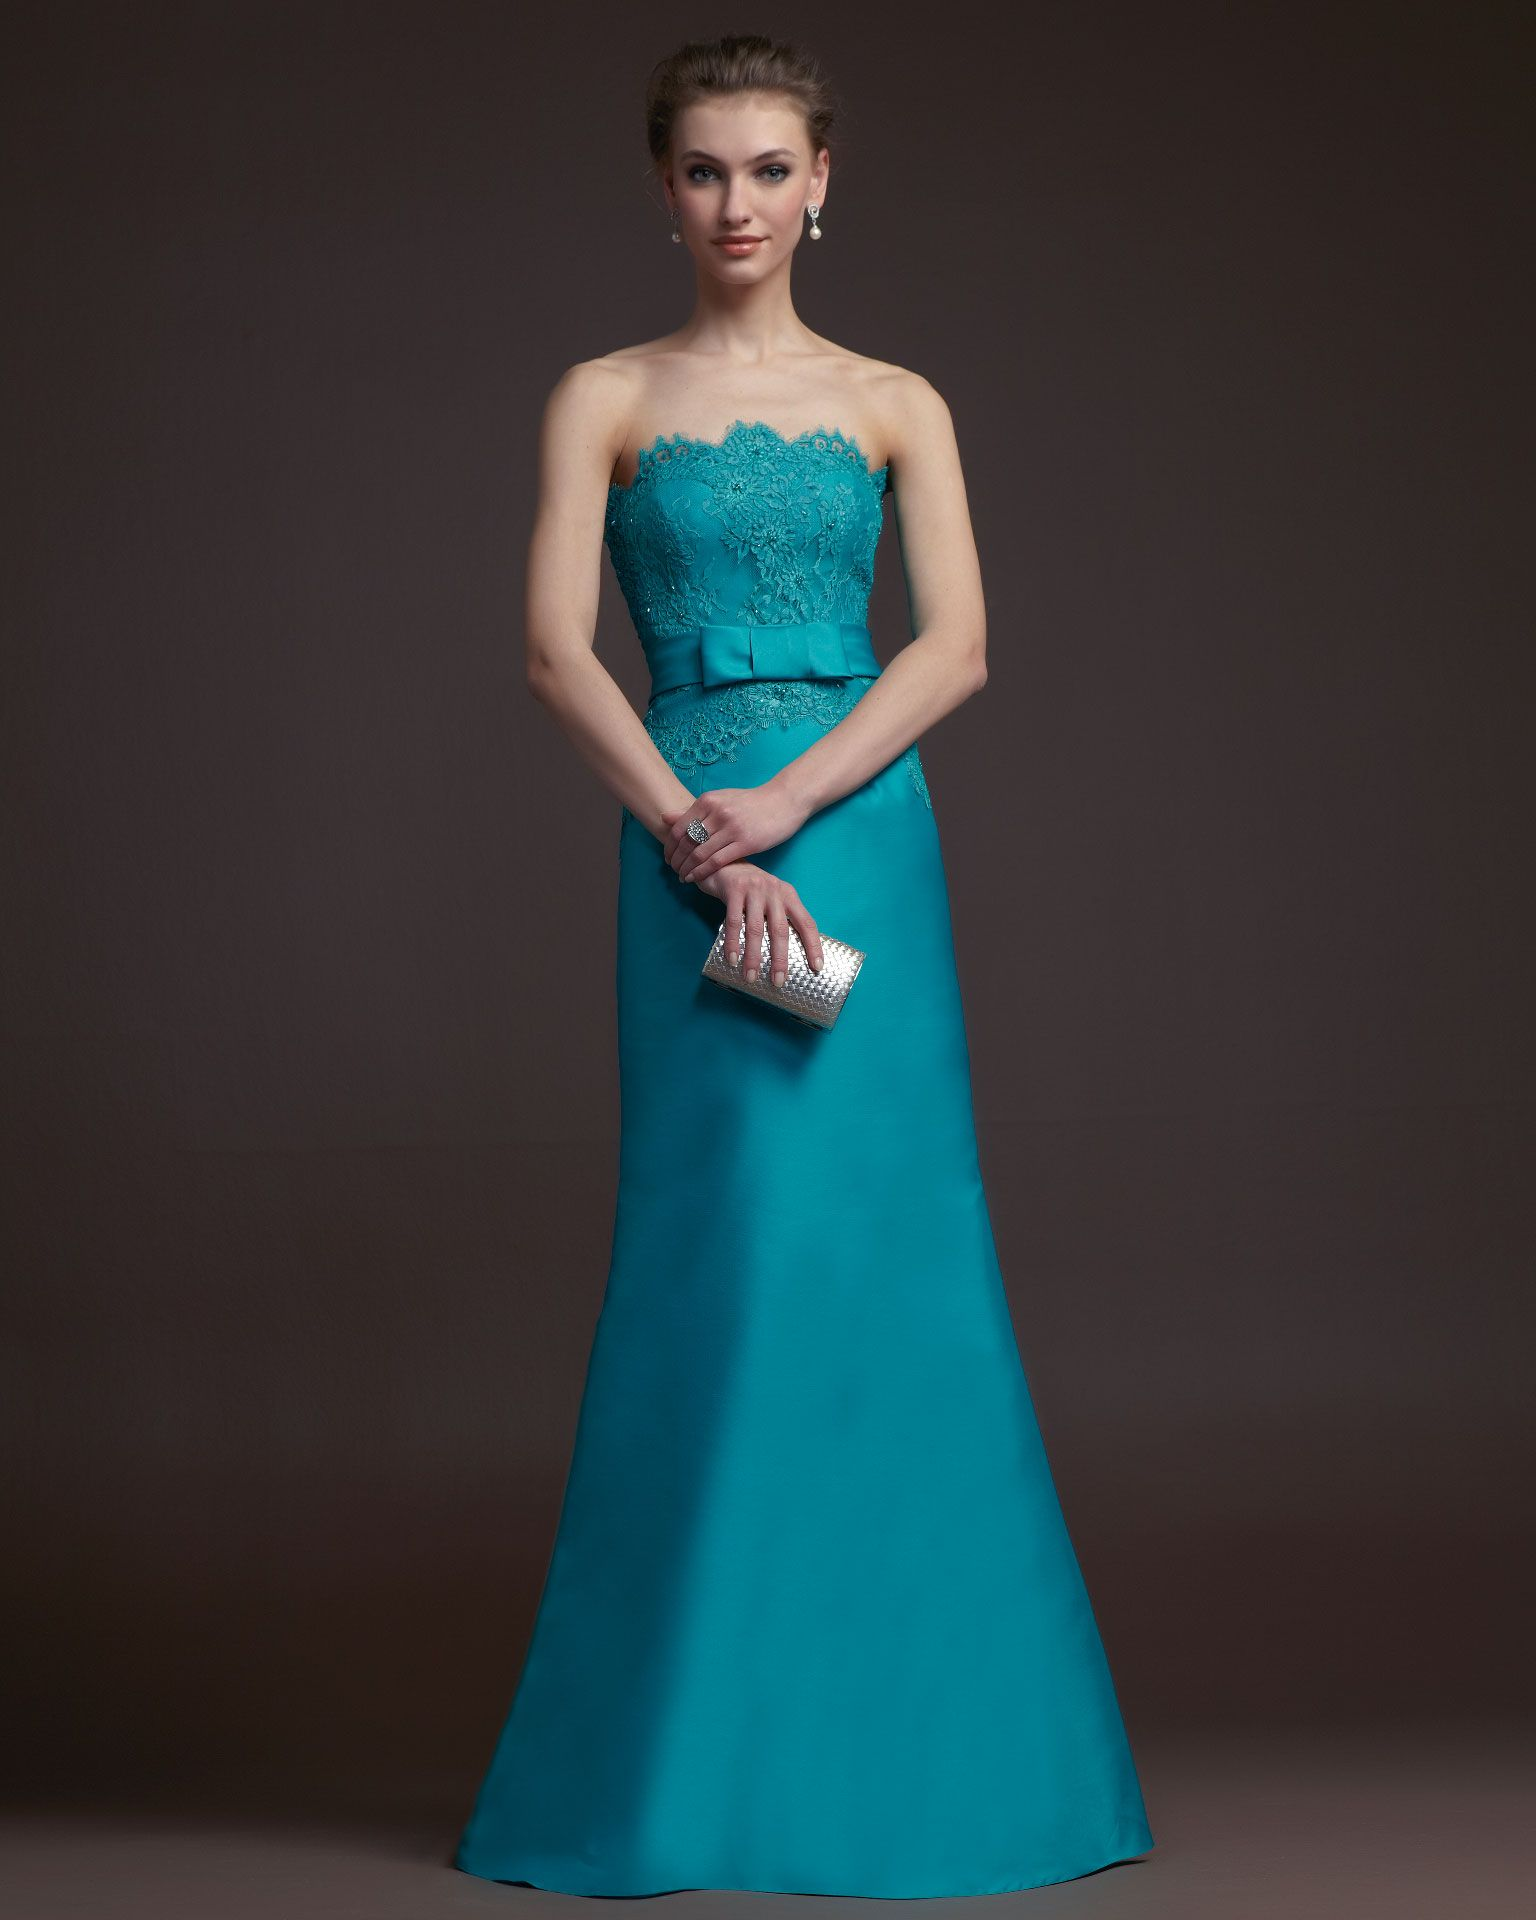 Gorgeous 2014 Bridesmaid Dresses from Aire Barcelona Vintage ...